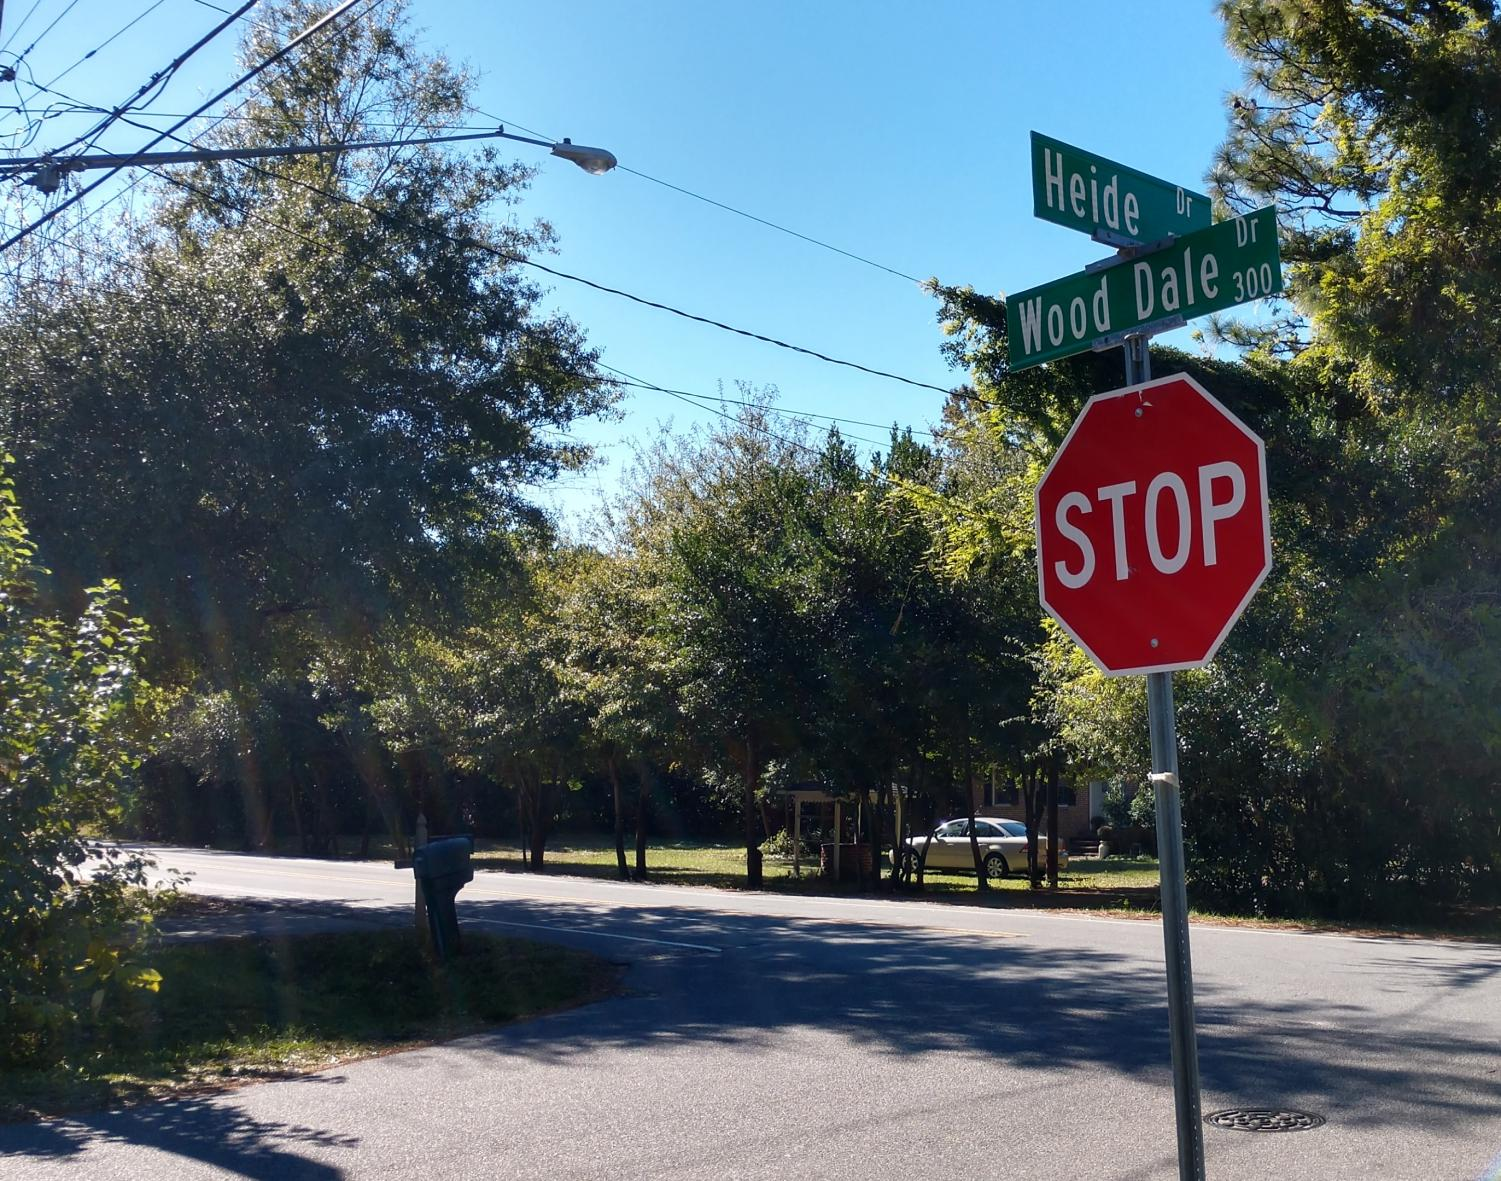 The alleged attempted abduction occurred on Heidi Drive as the female student walked toward the entrance to campus near Wood Dale Drive.